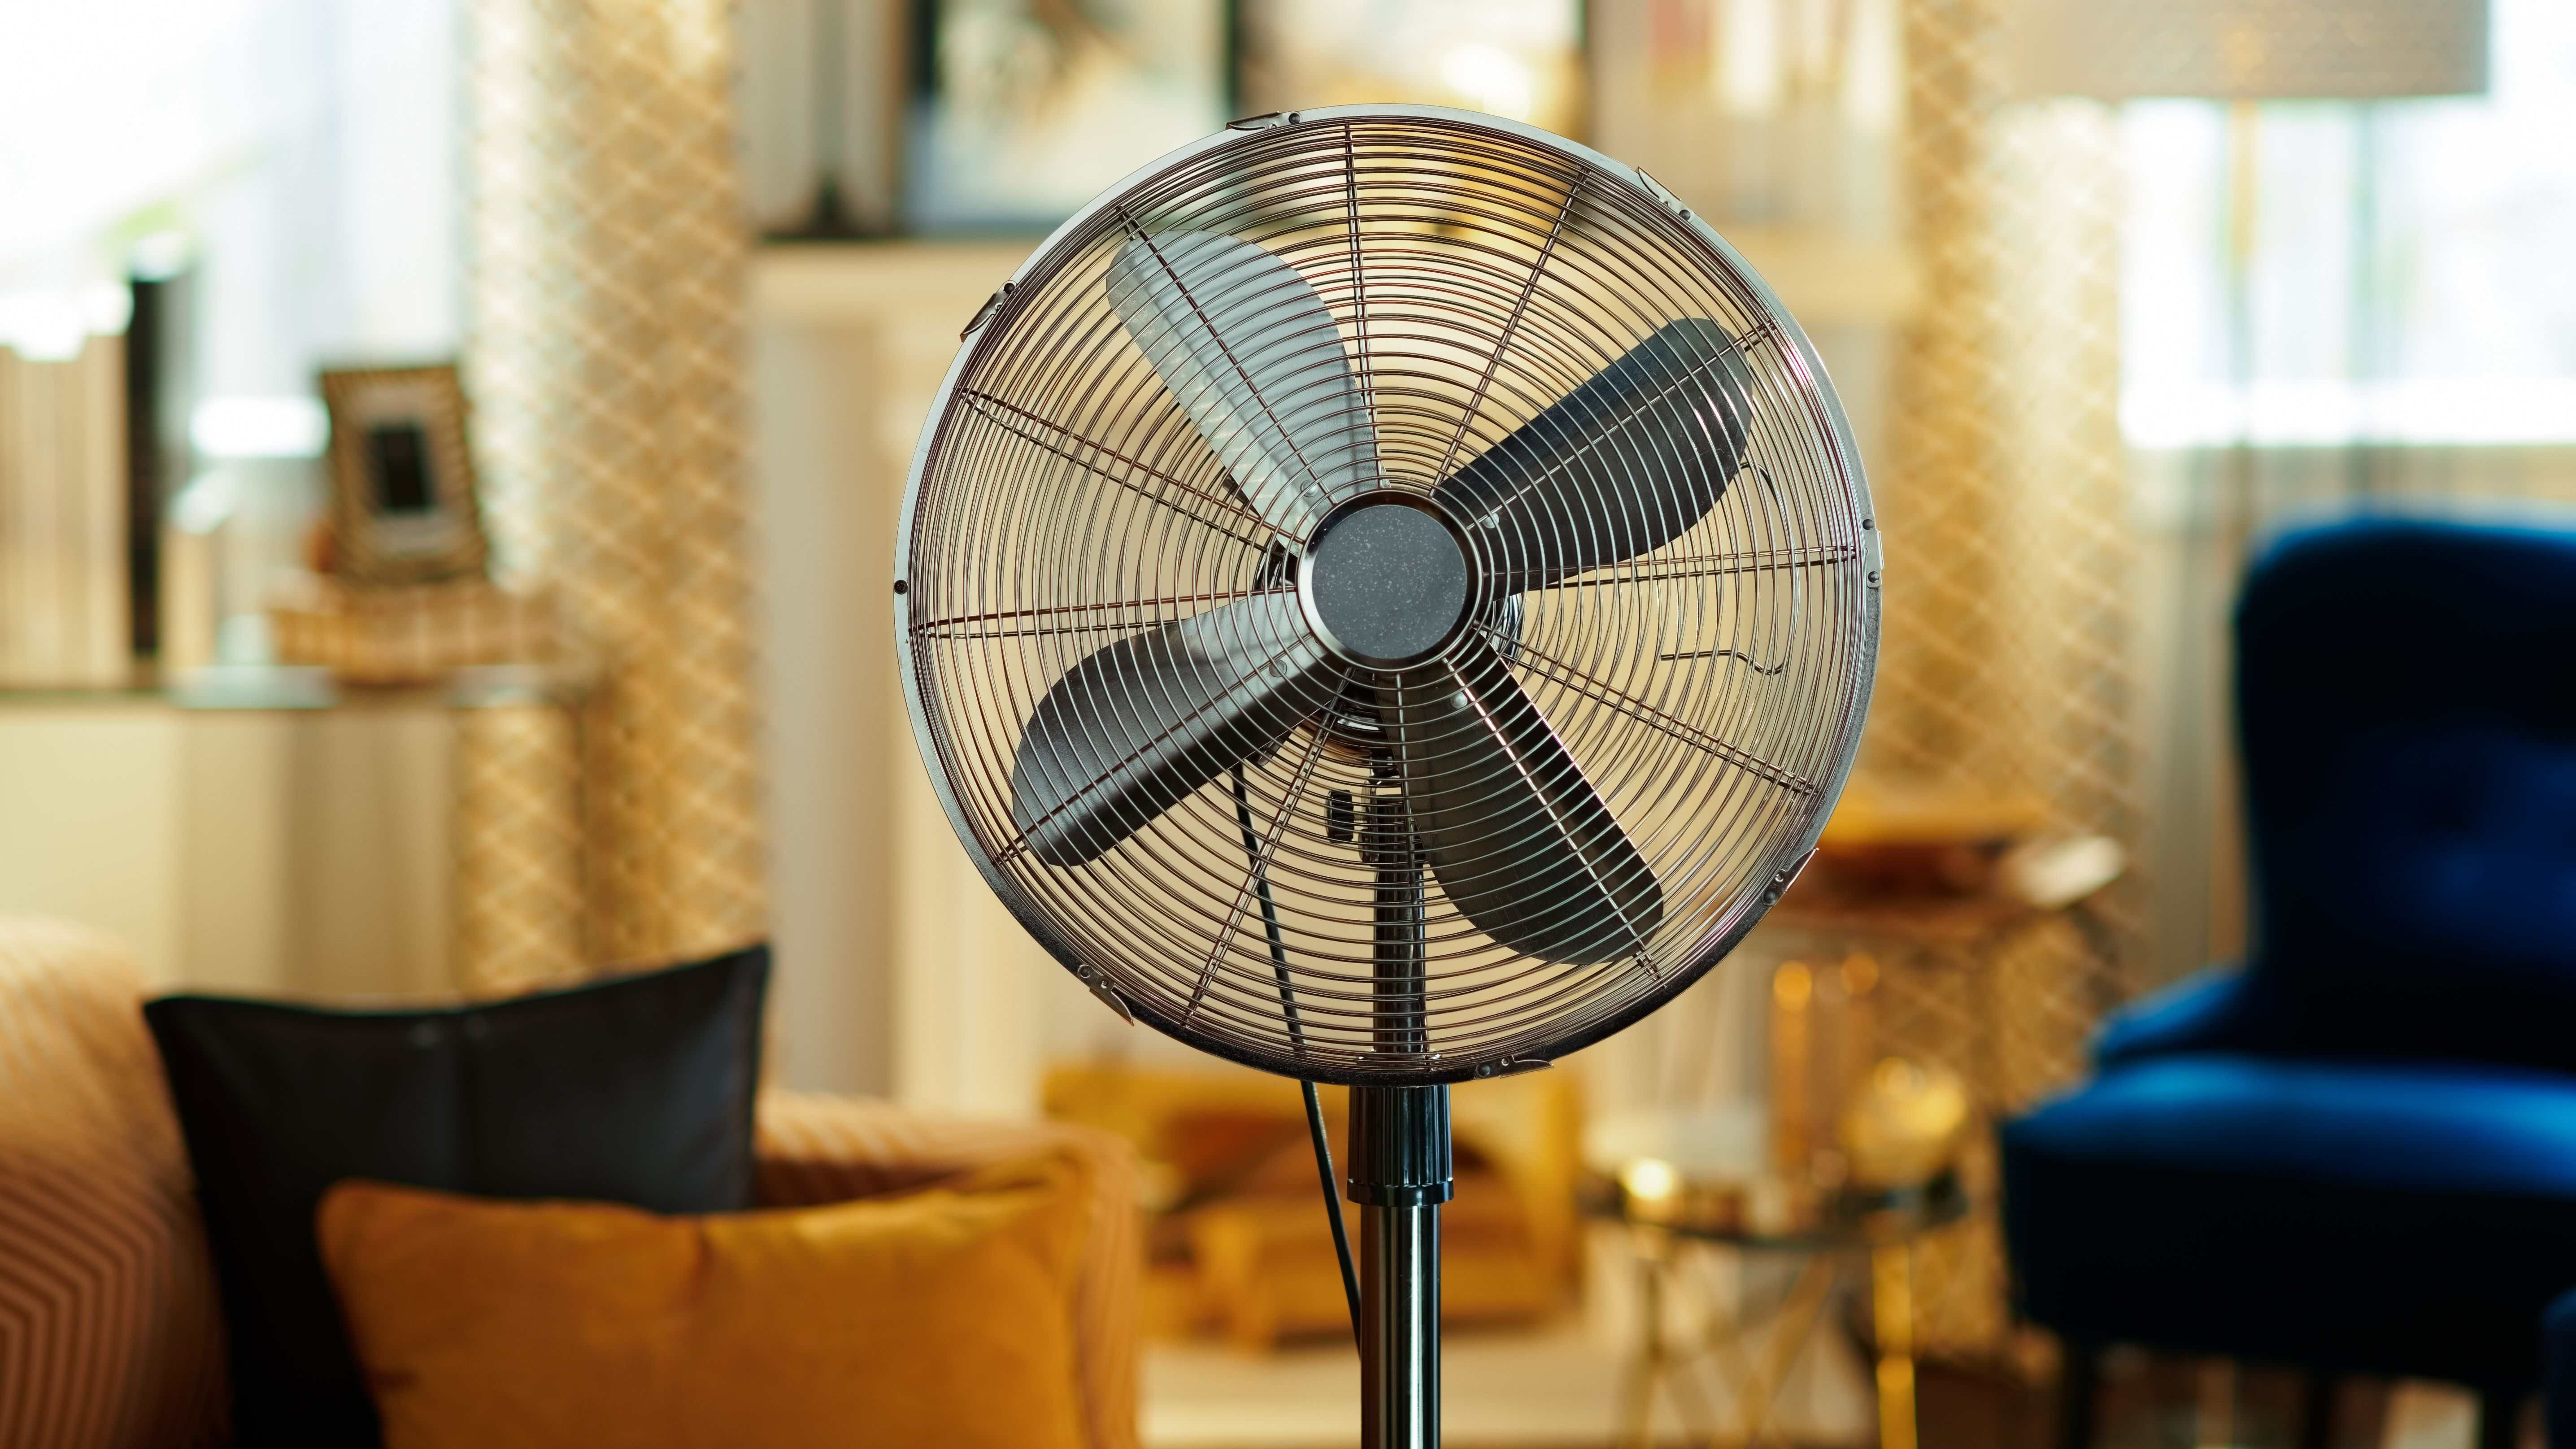 Fan or portable air conditioner: which is right for you?